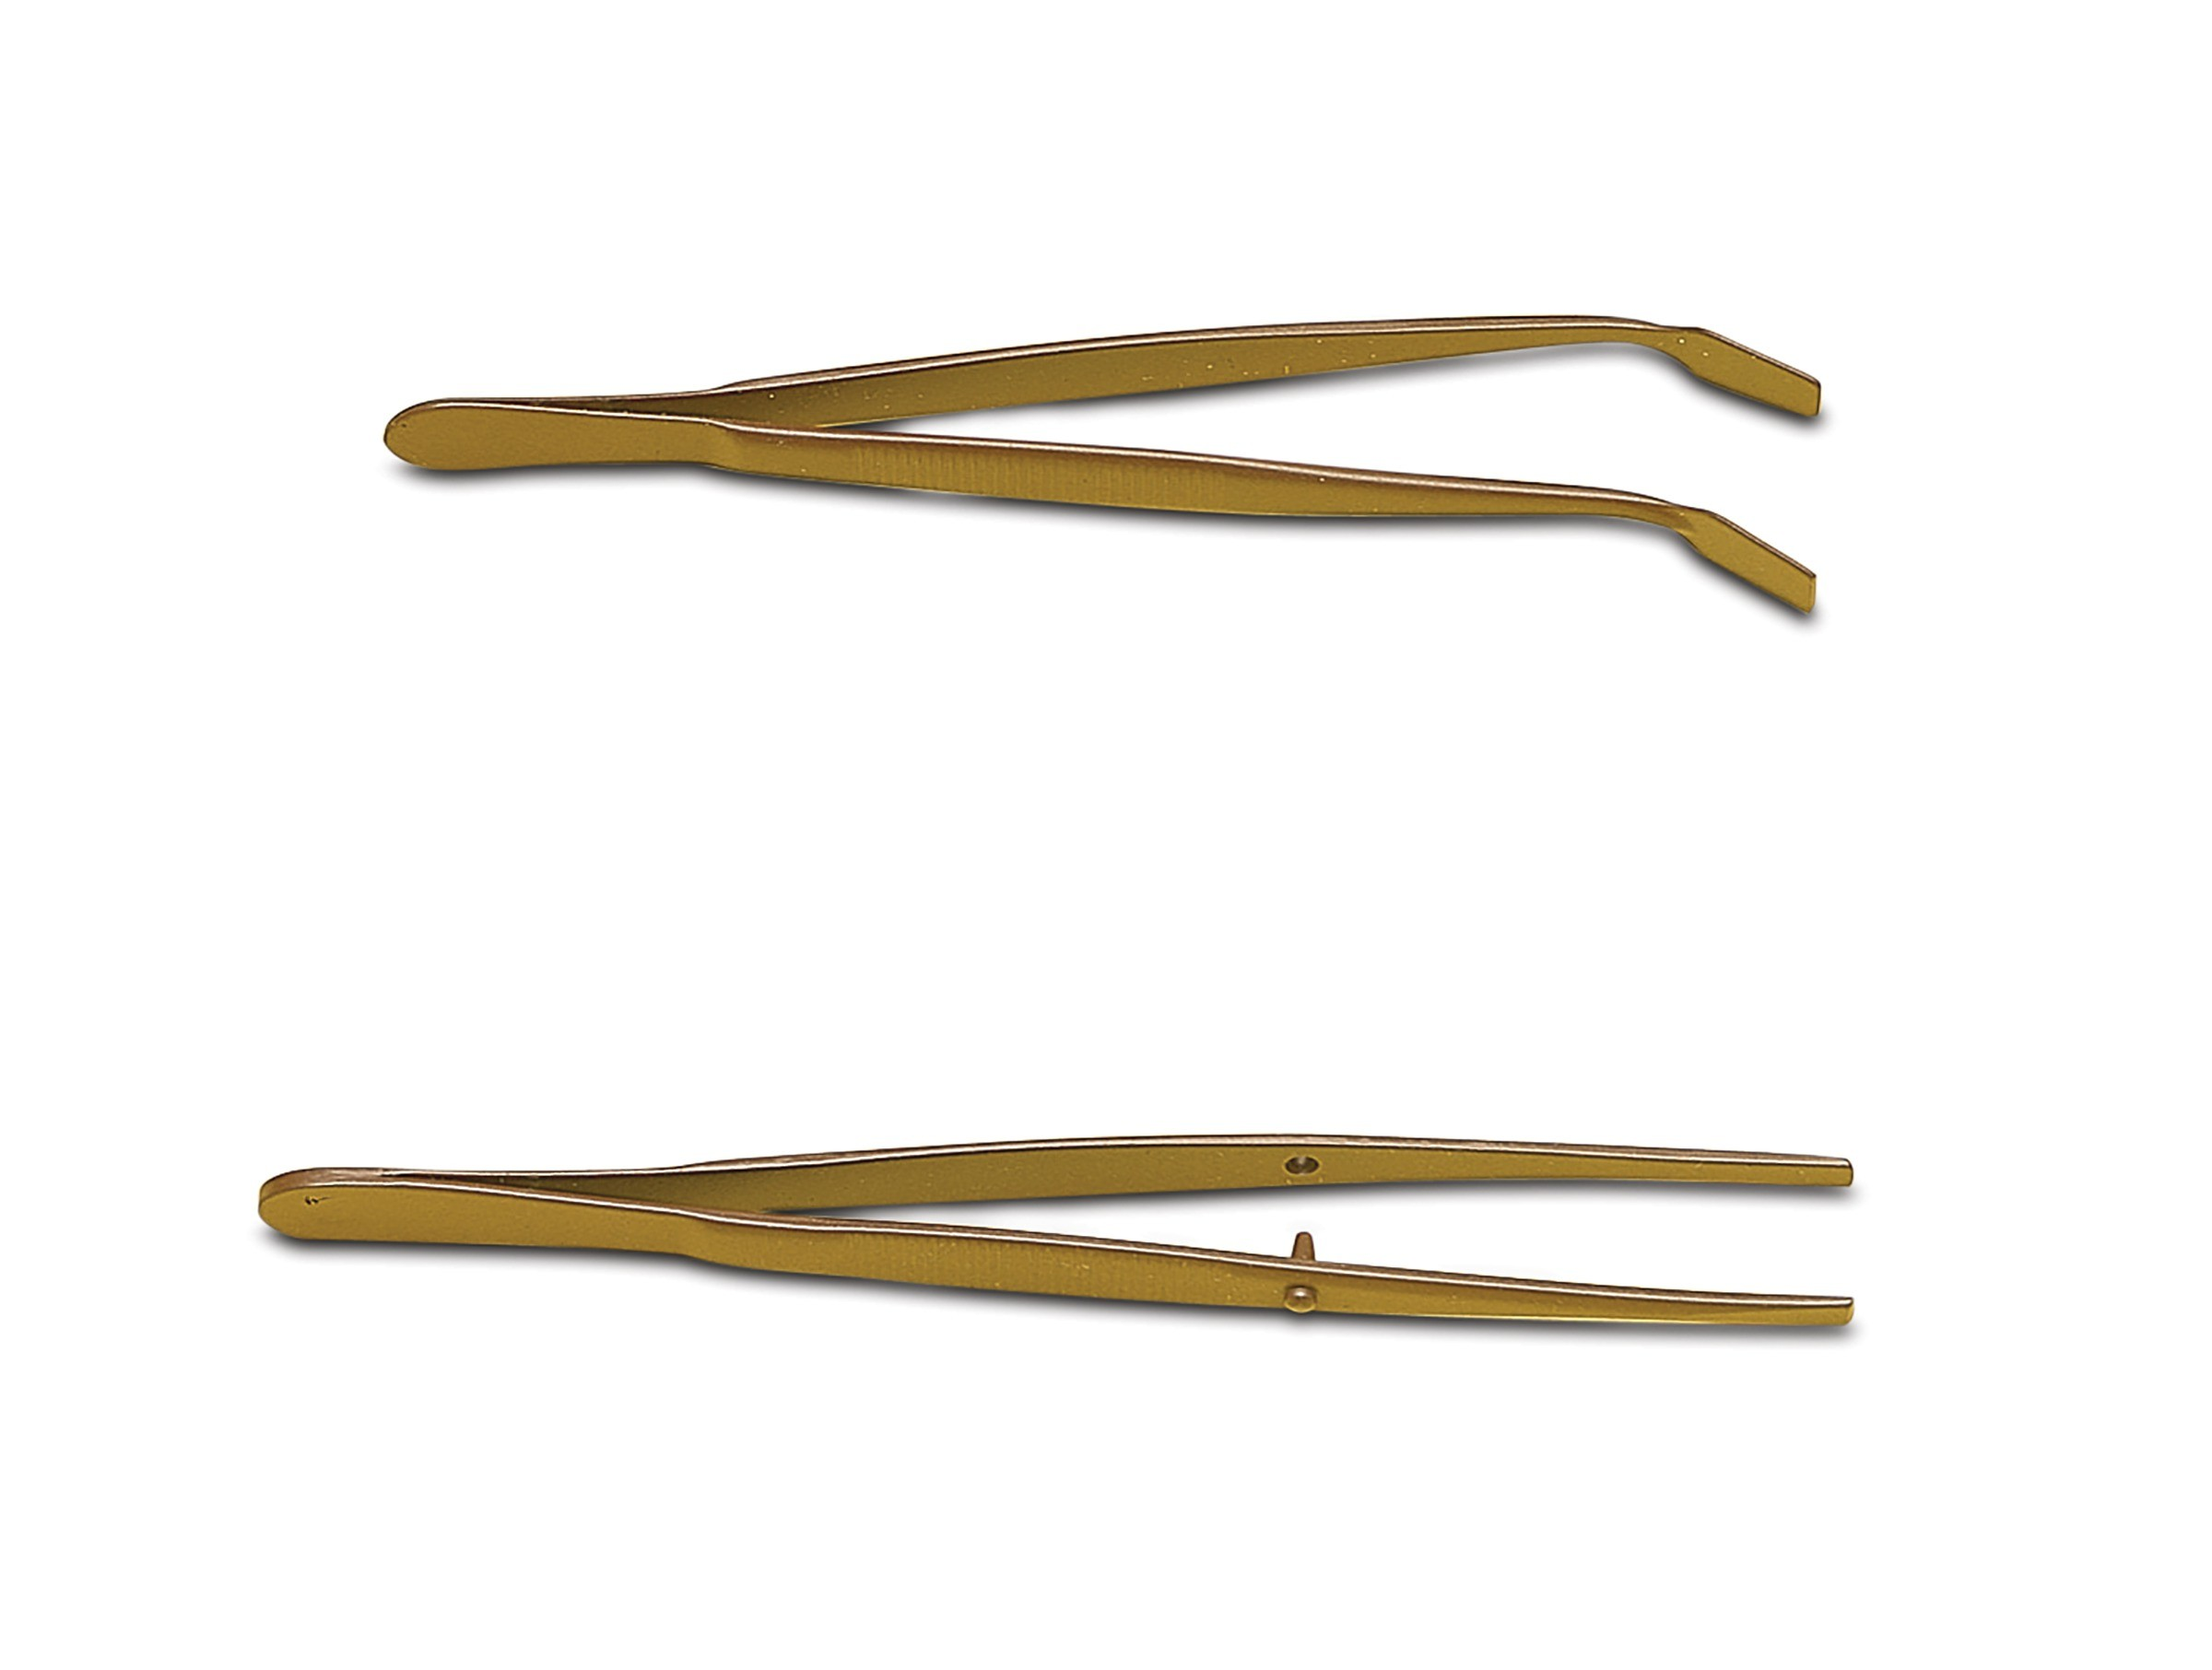 Cover Glass Forceps